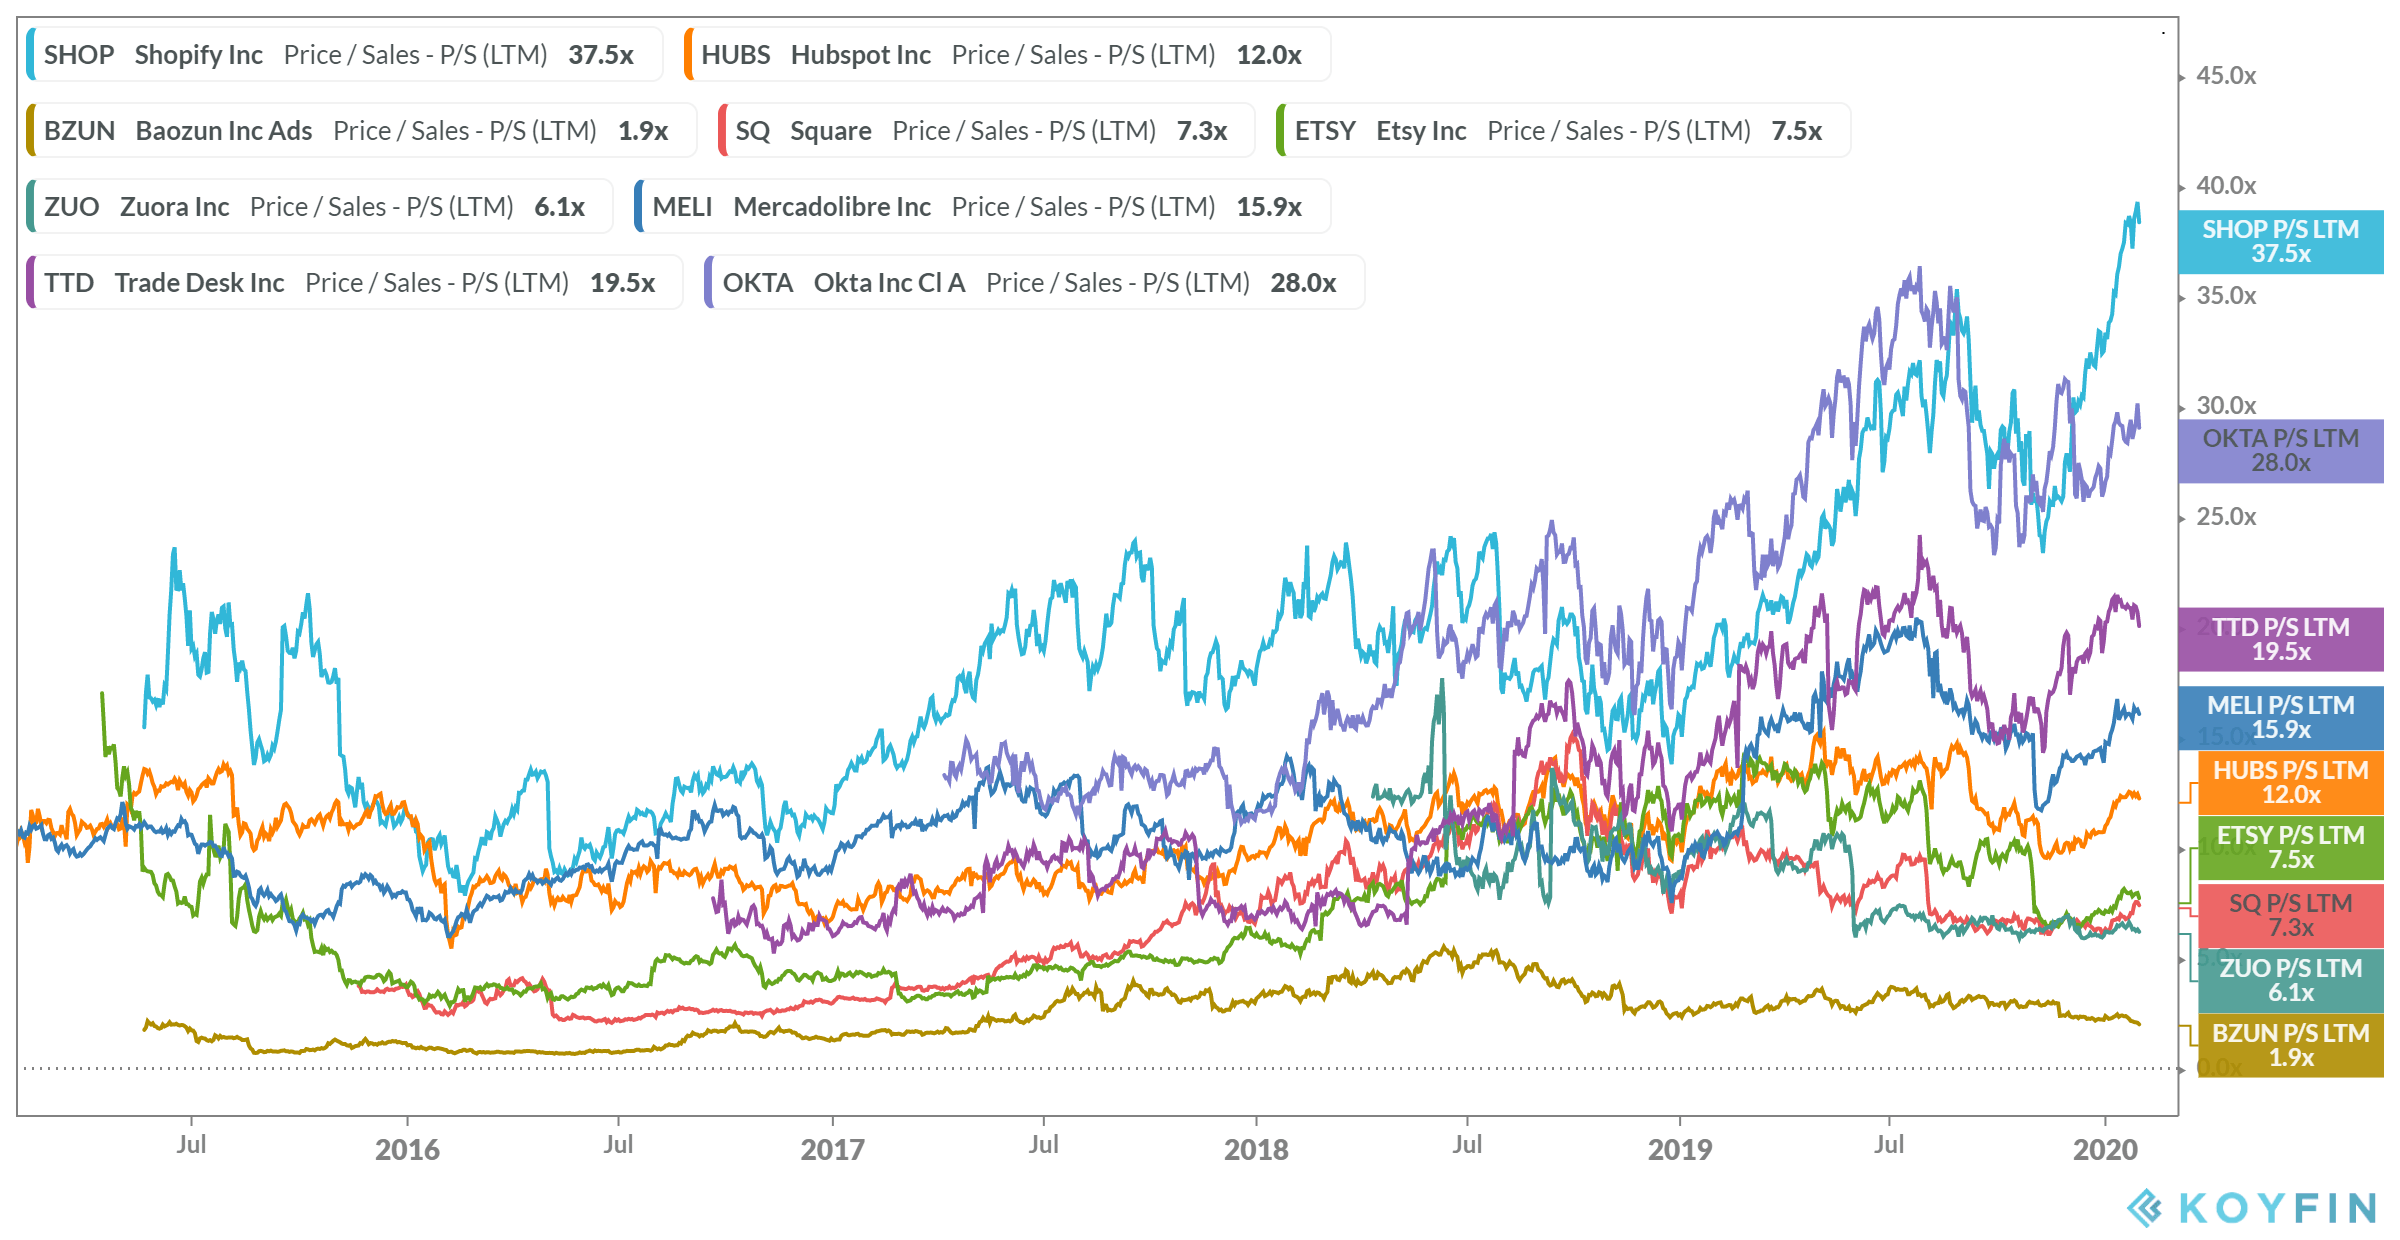 Shopify A Bubble Type Valuation Beyond Reasoning Nyse Shop Seeking Alpha